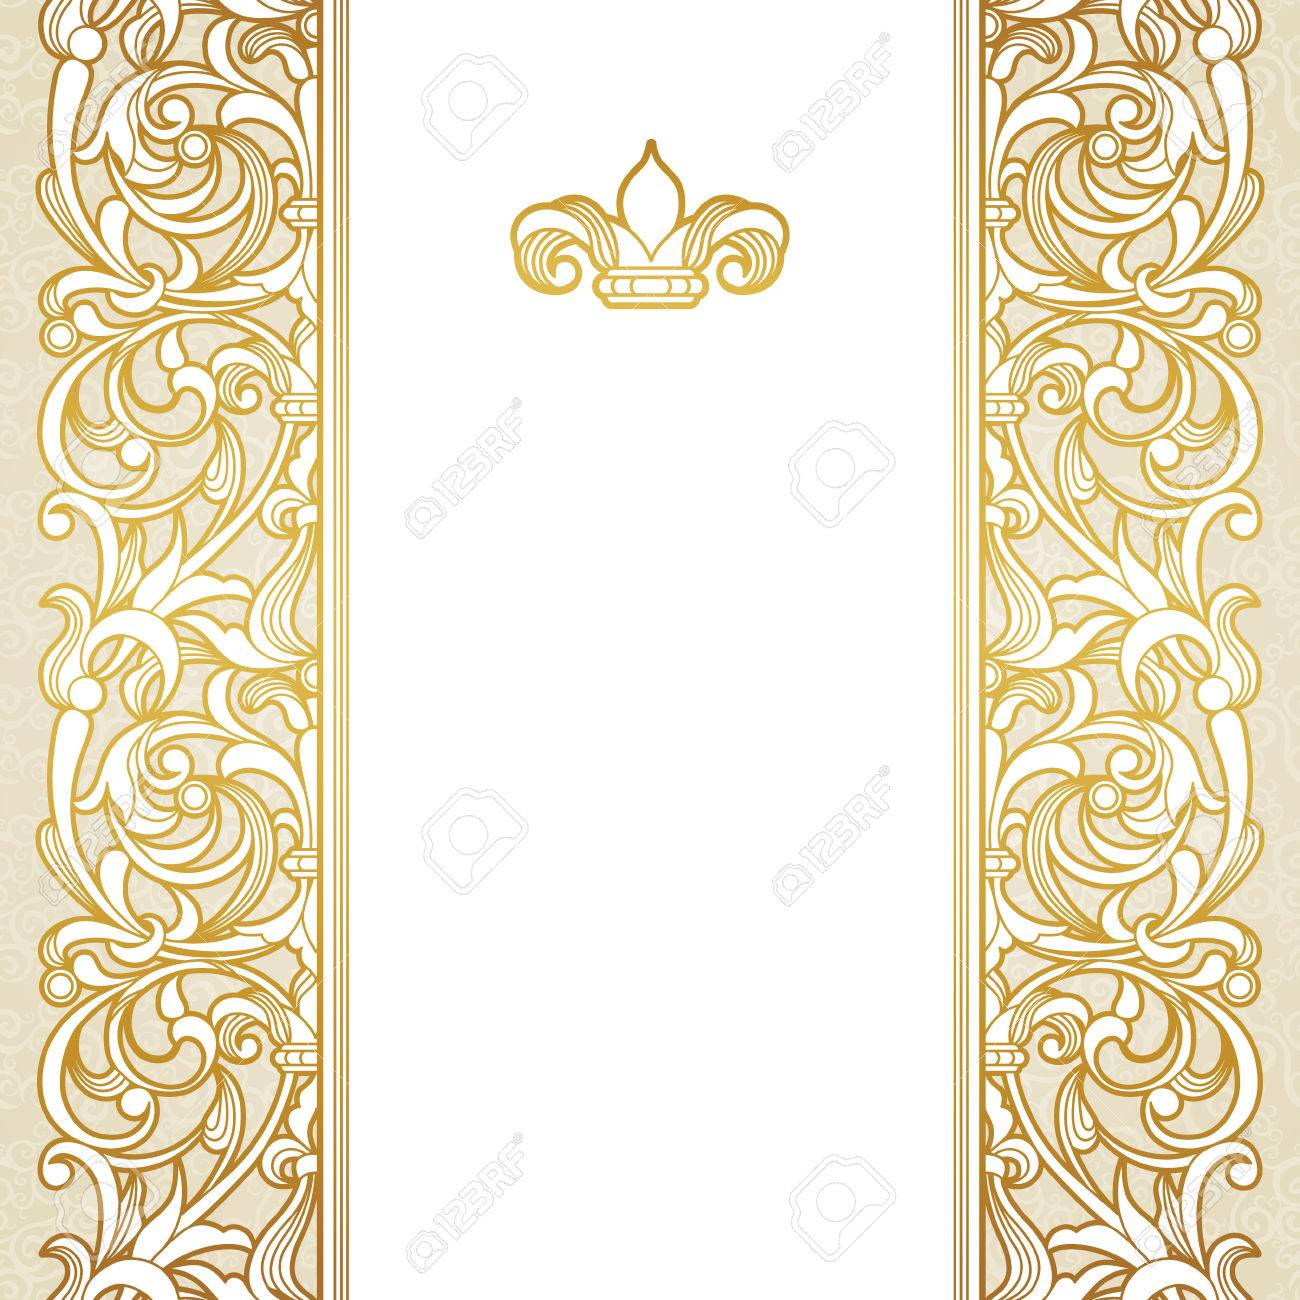 Vector Floral Border In Victorian Style Ornate Element For Design